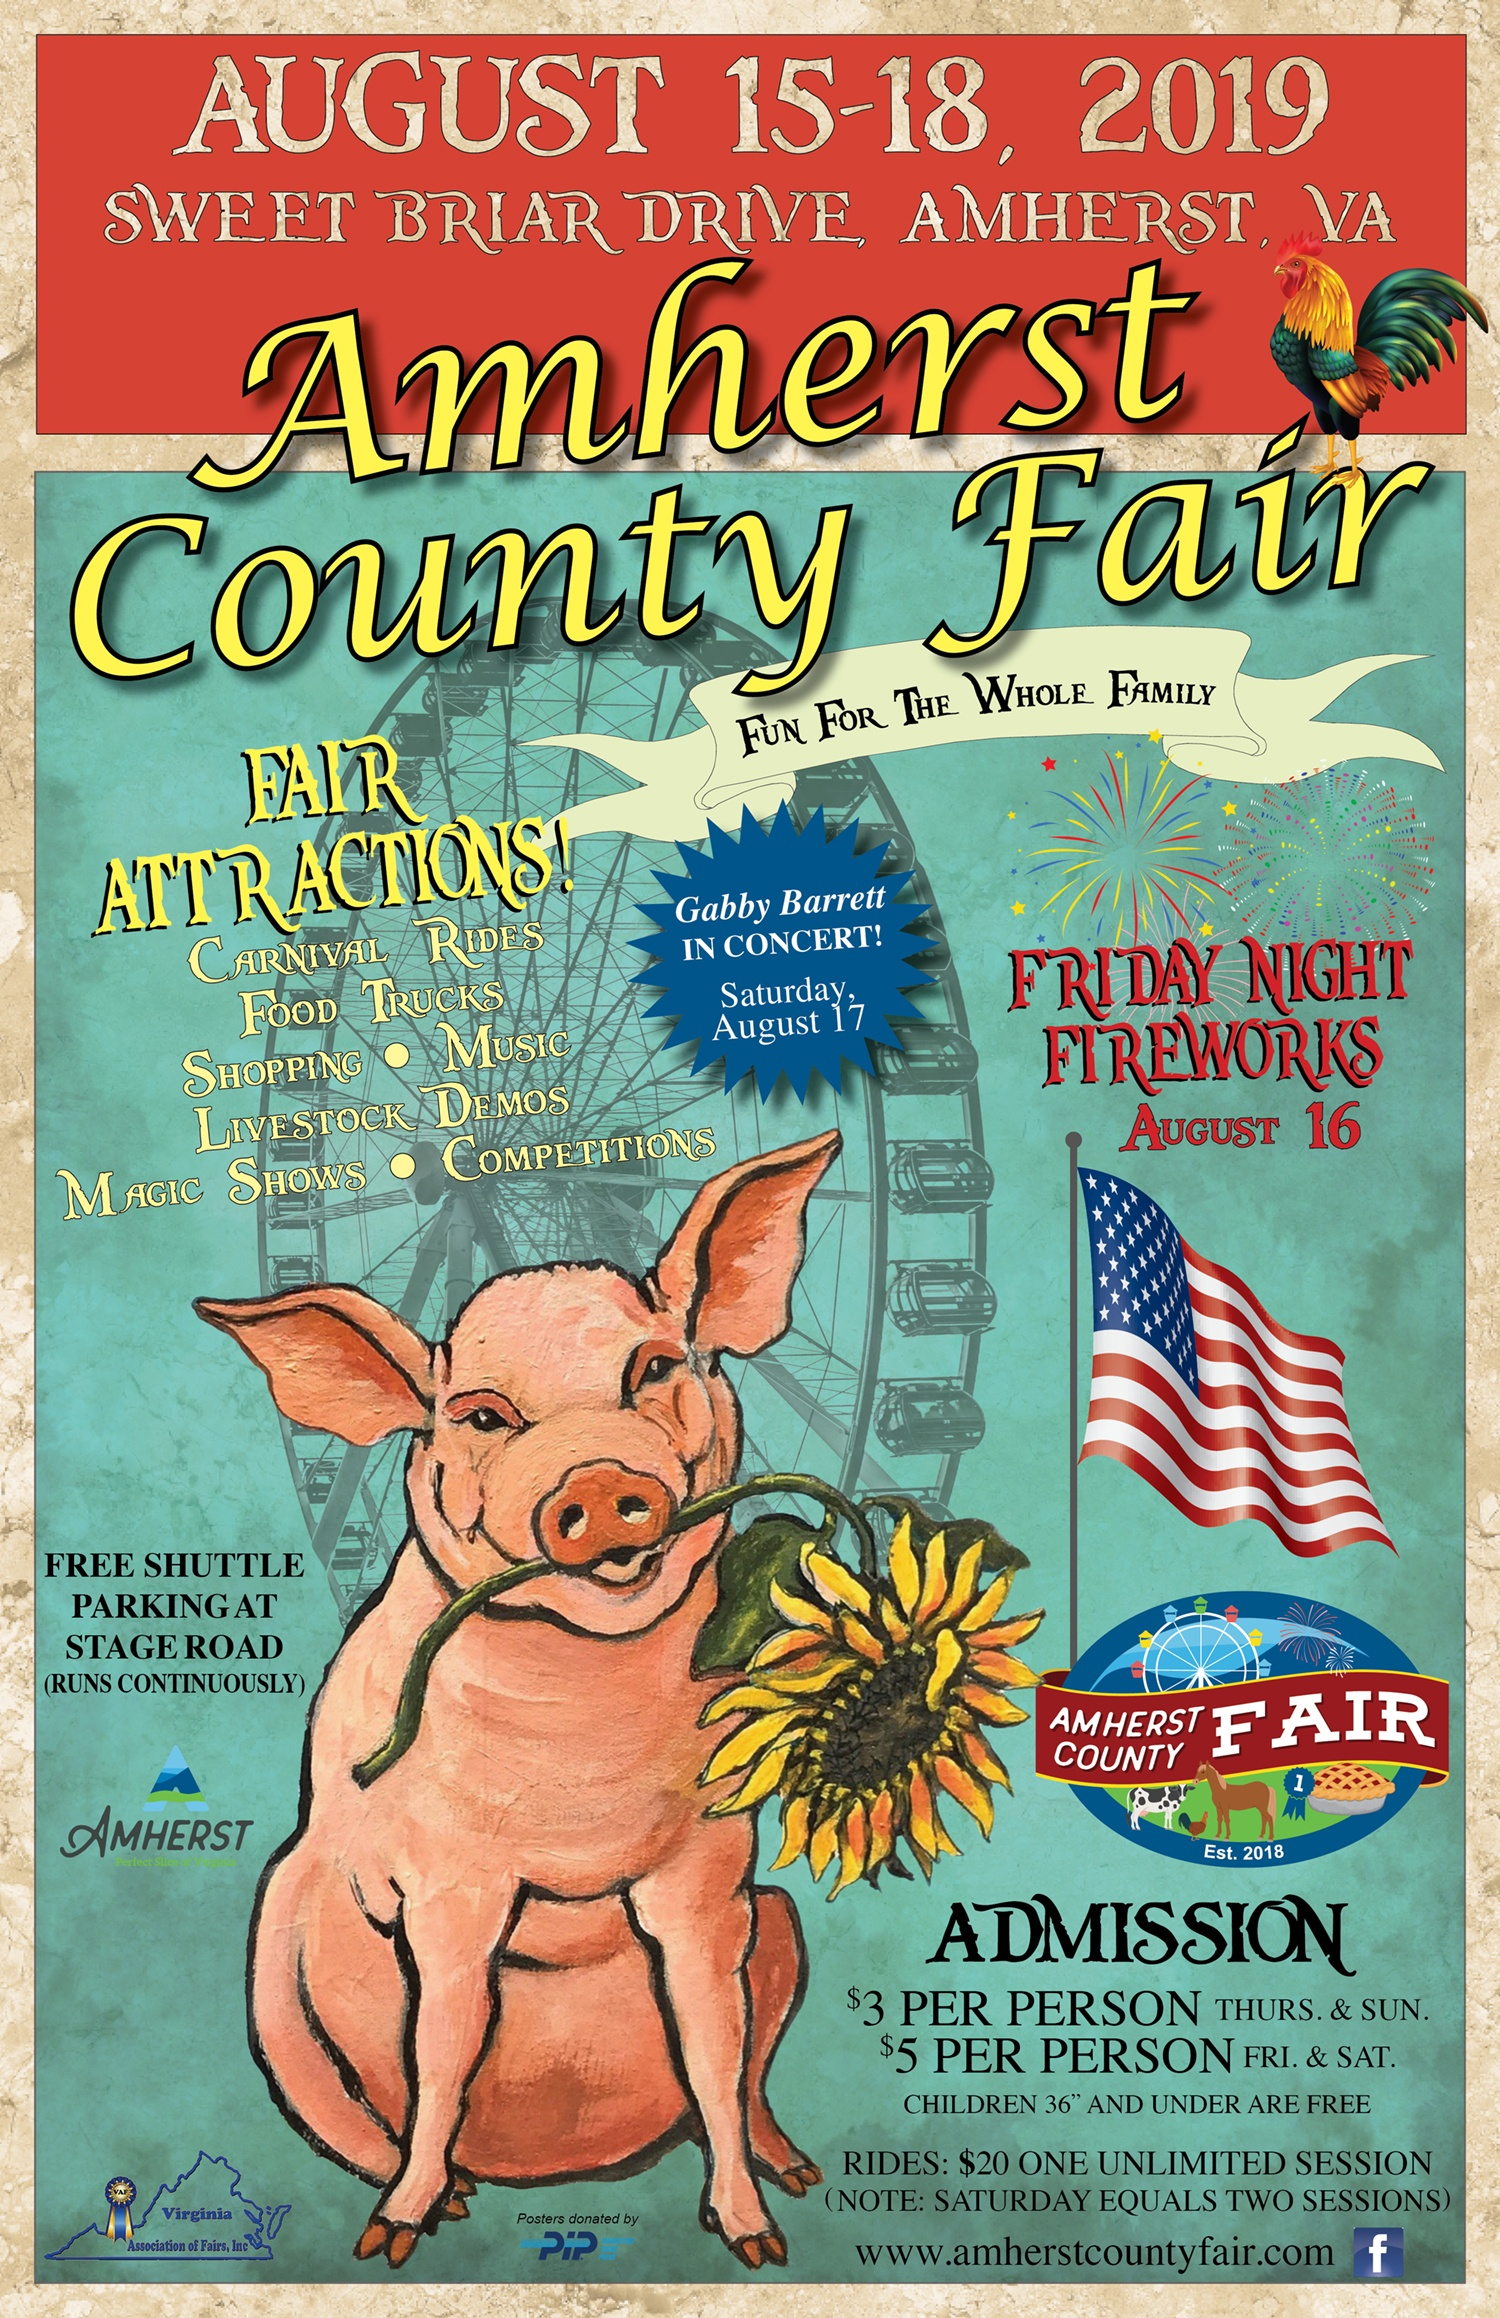 Amherst County Fair | August 15-18, 2019